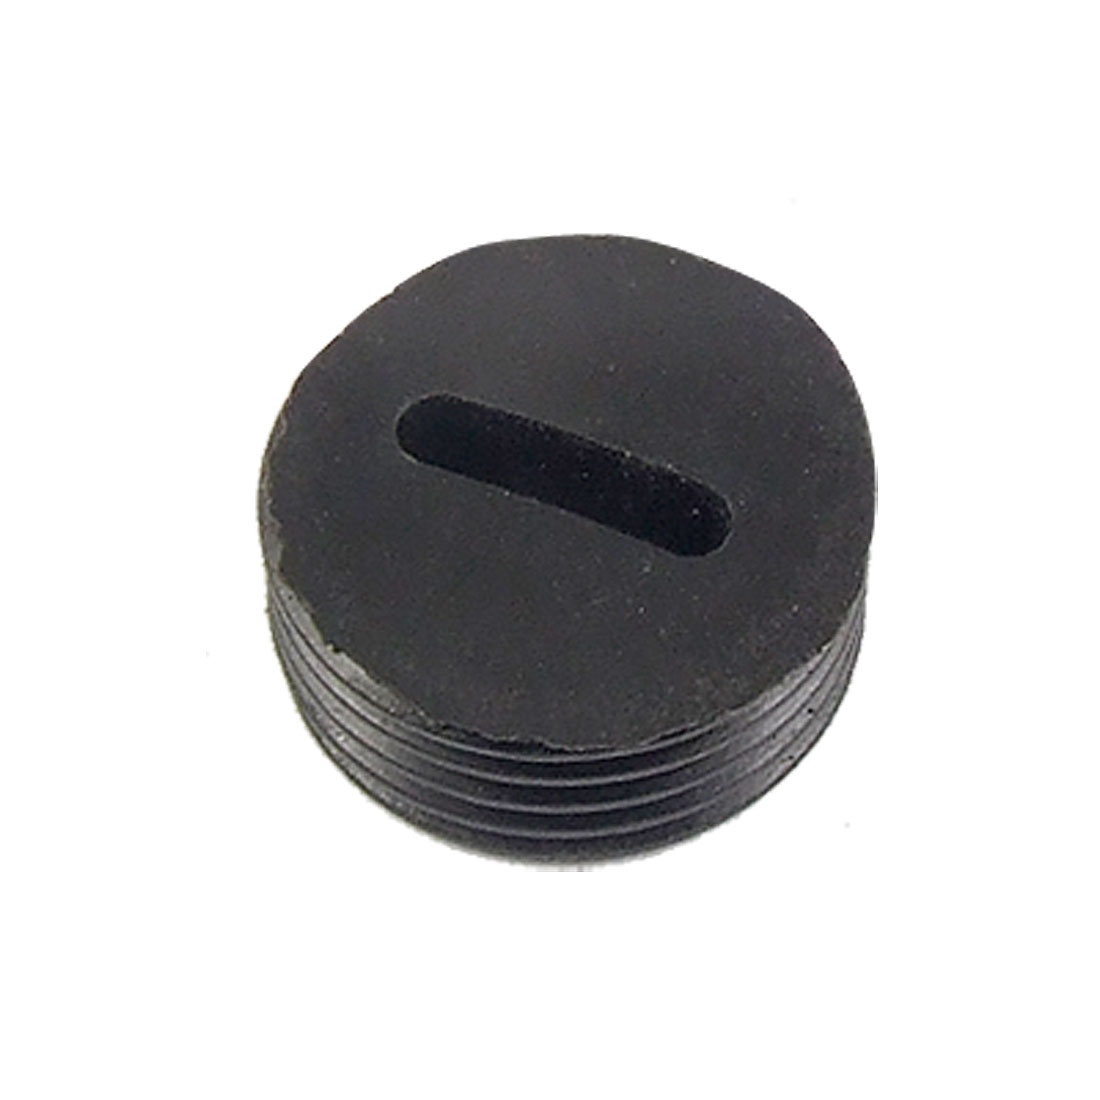 20 Pcs Black Replacement Carbon Bruch Holder Cap 12.5mm